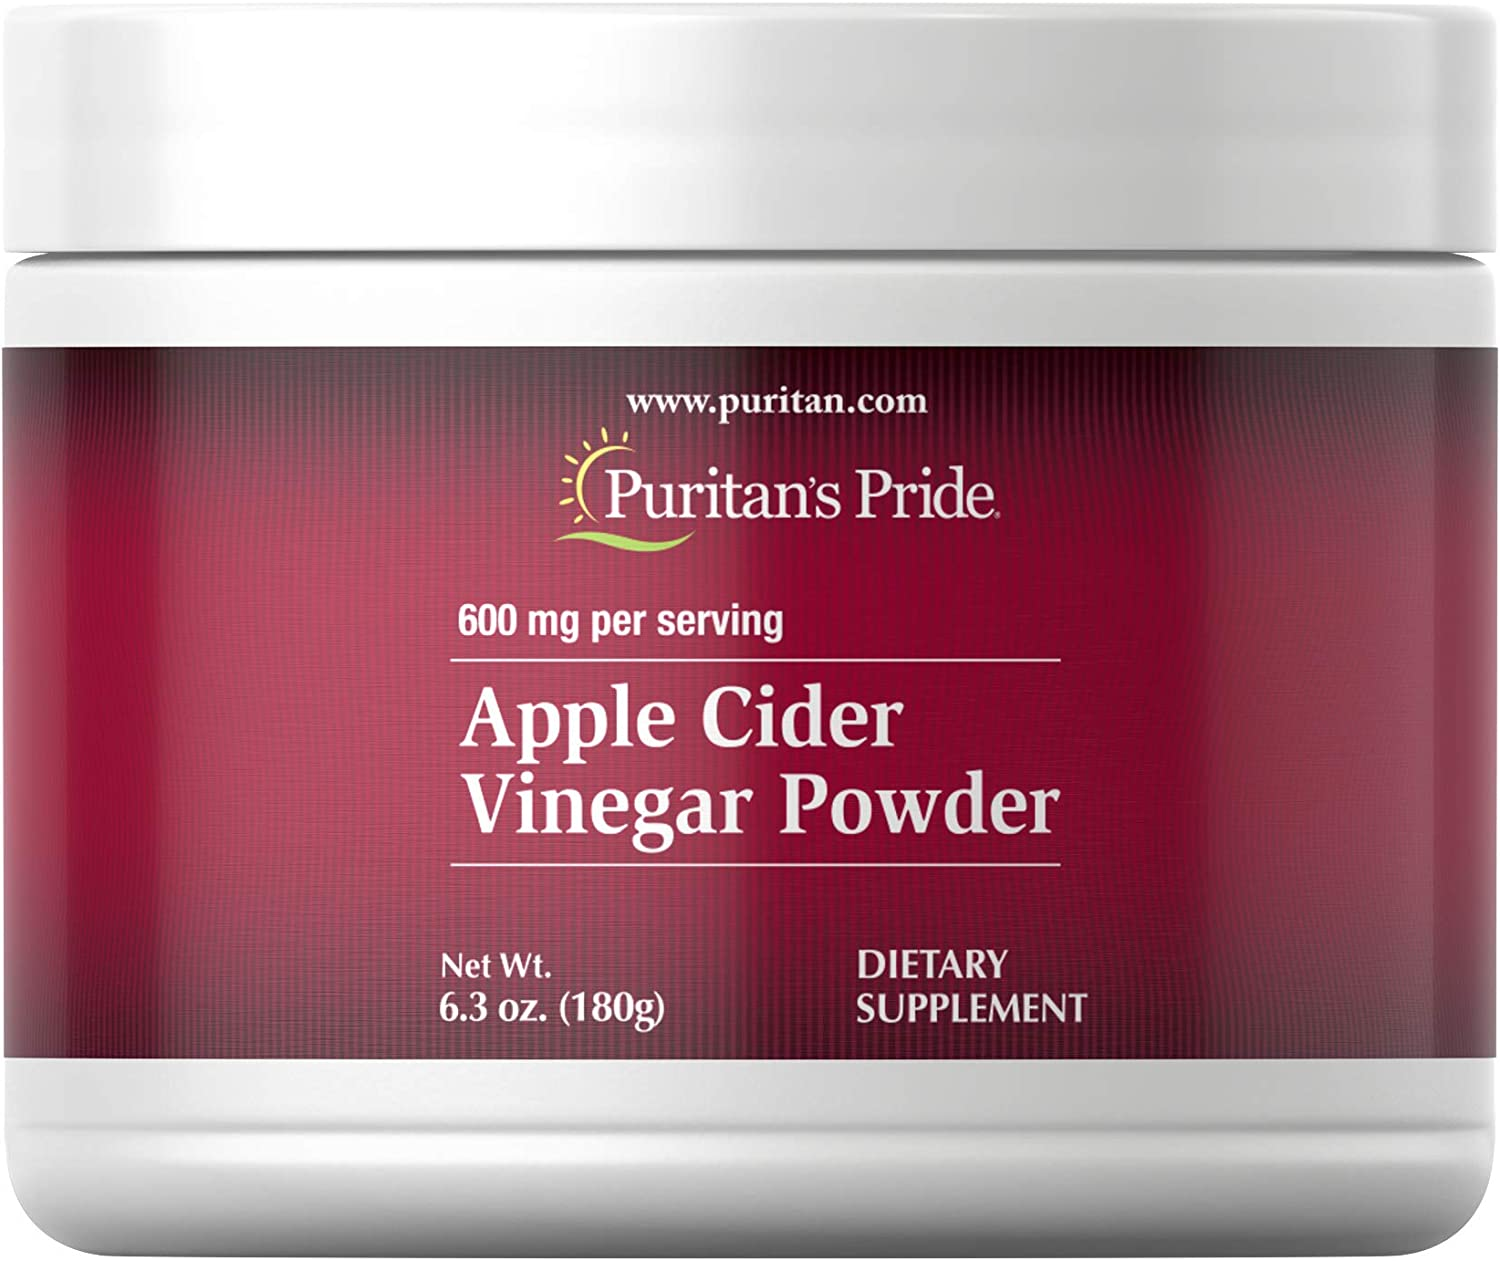 Puritans Pride Apple Cider Vinegar